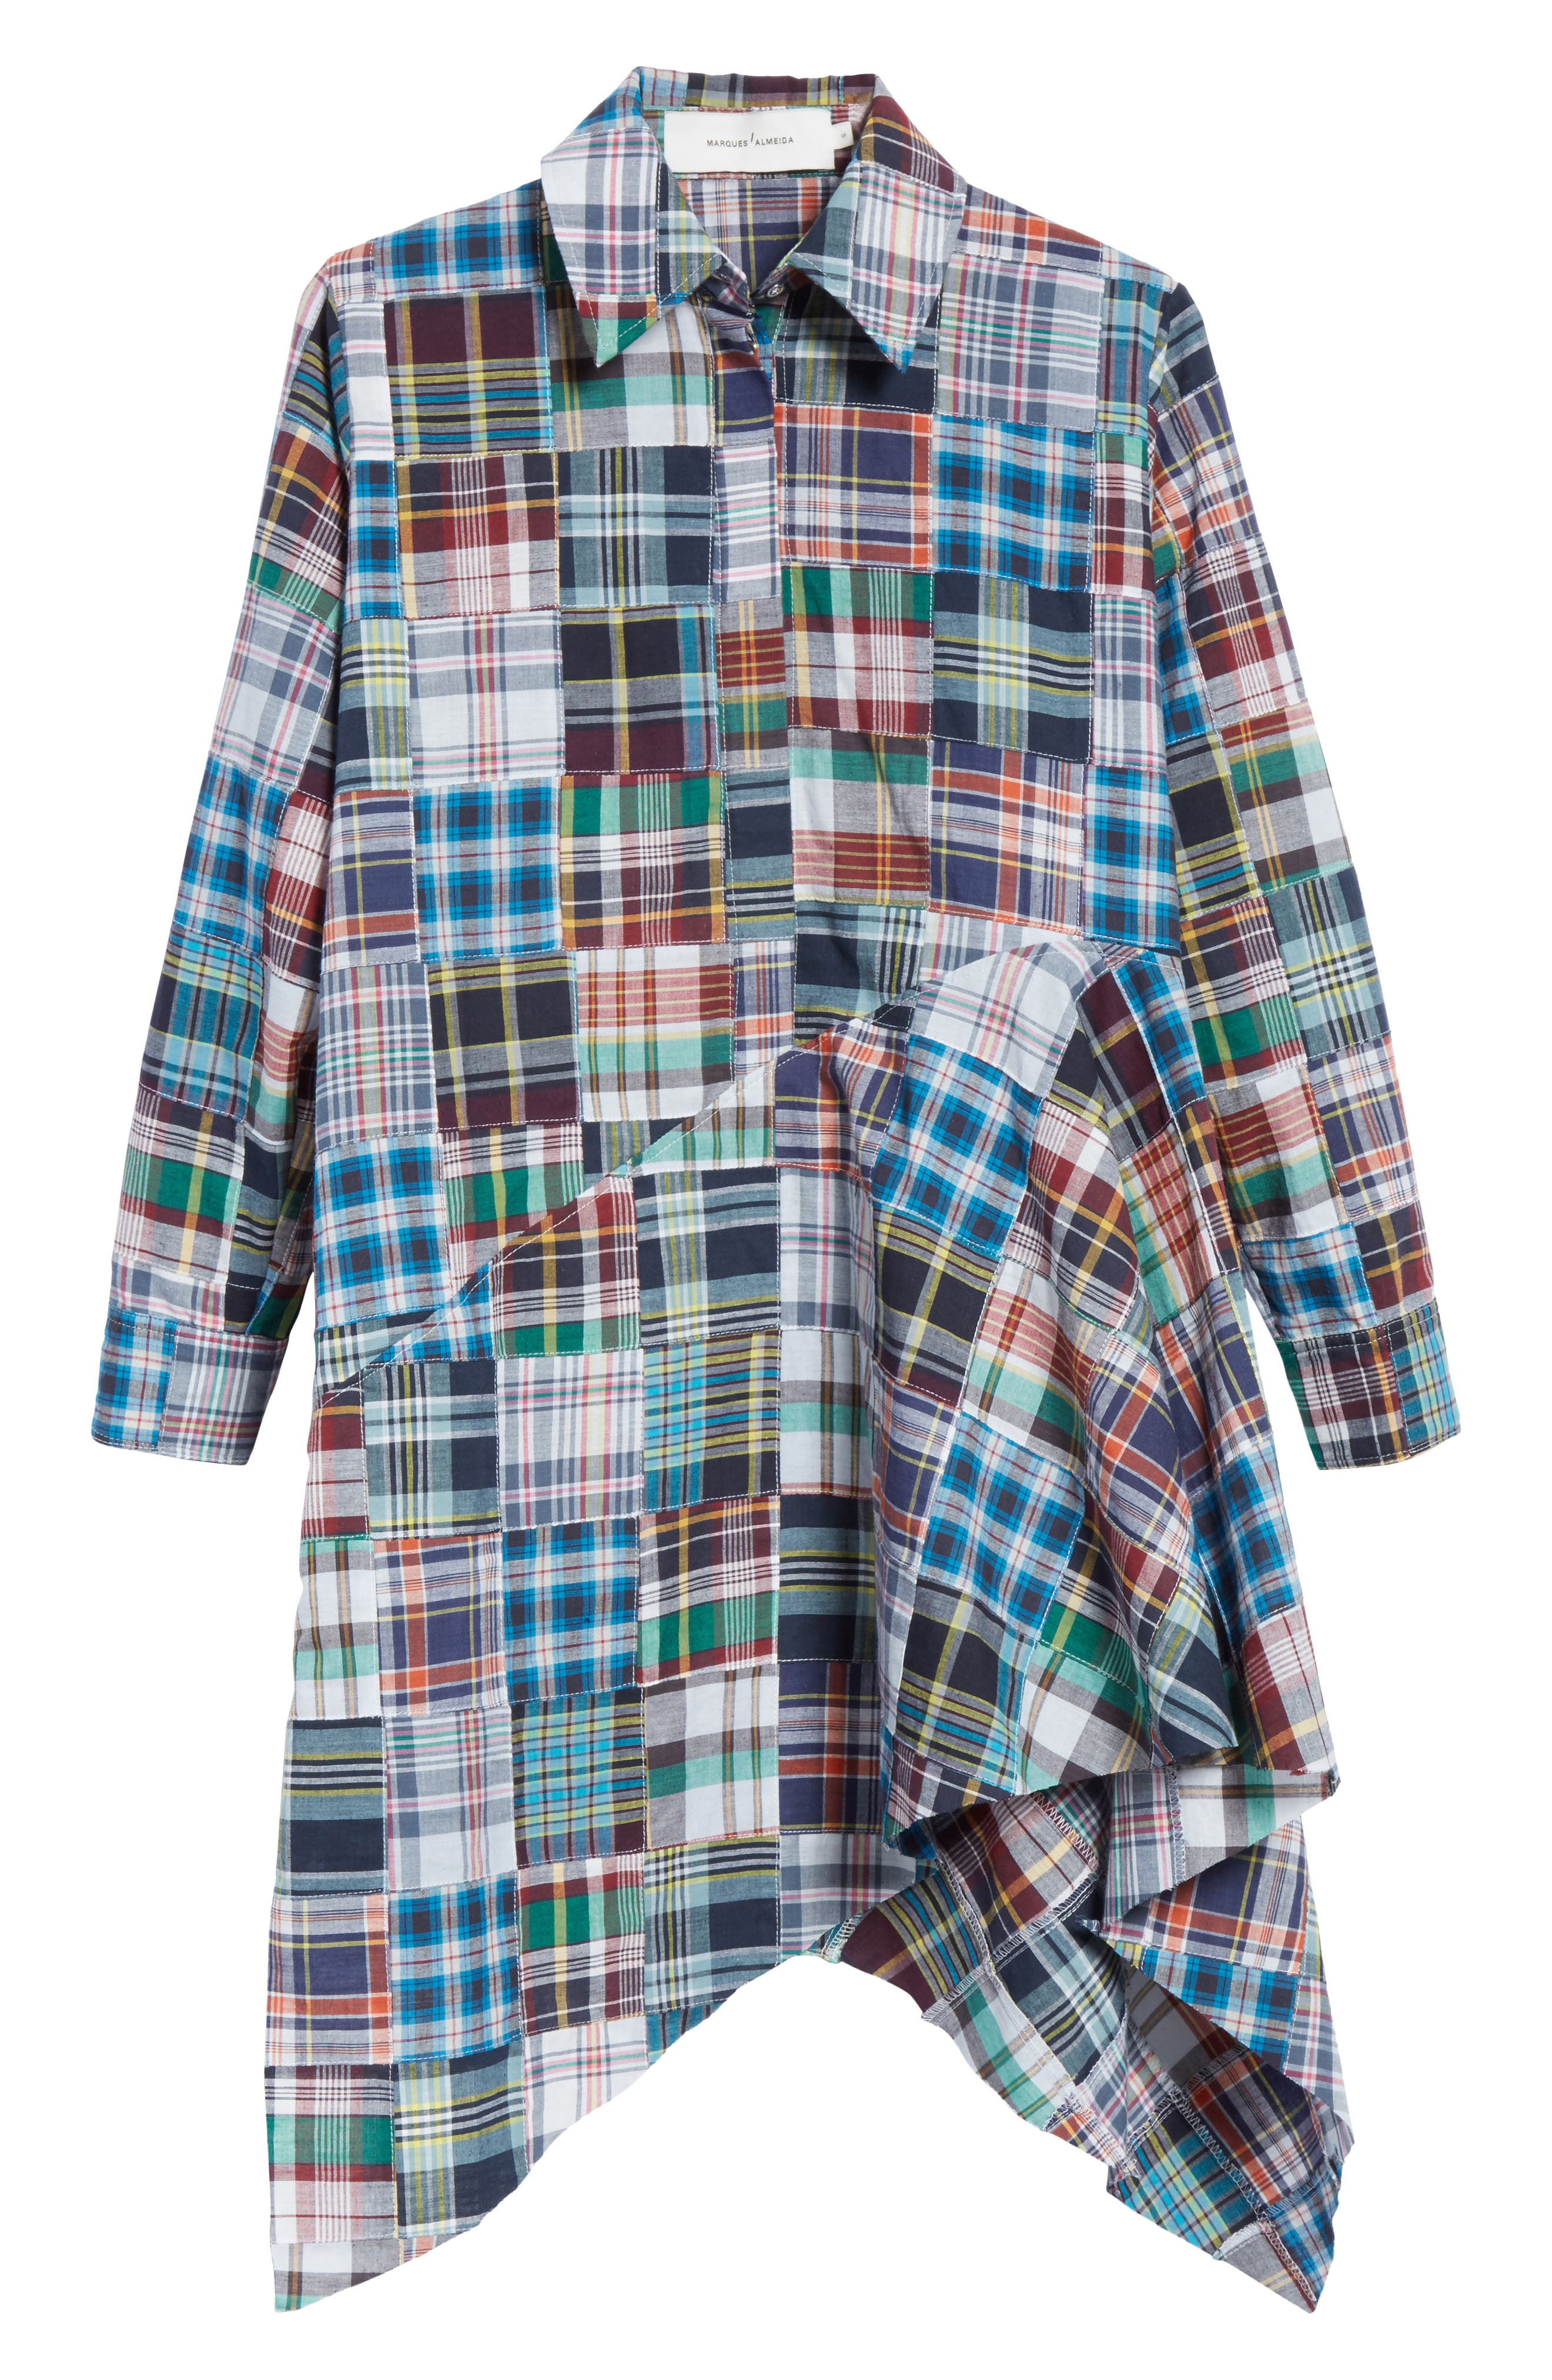 Marques'Almeida Asymmetric Patchwork Plaid Shirtdress,                             Alternate thumbnail 7, color,                             Navy/Multi